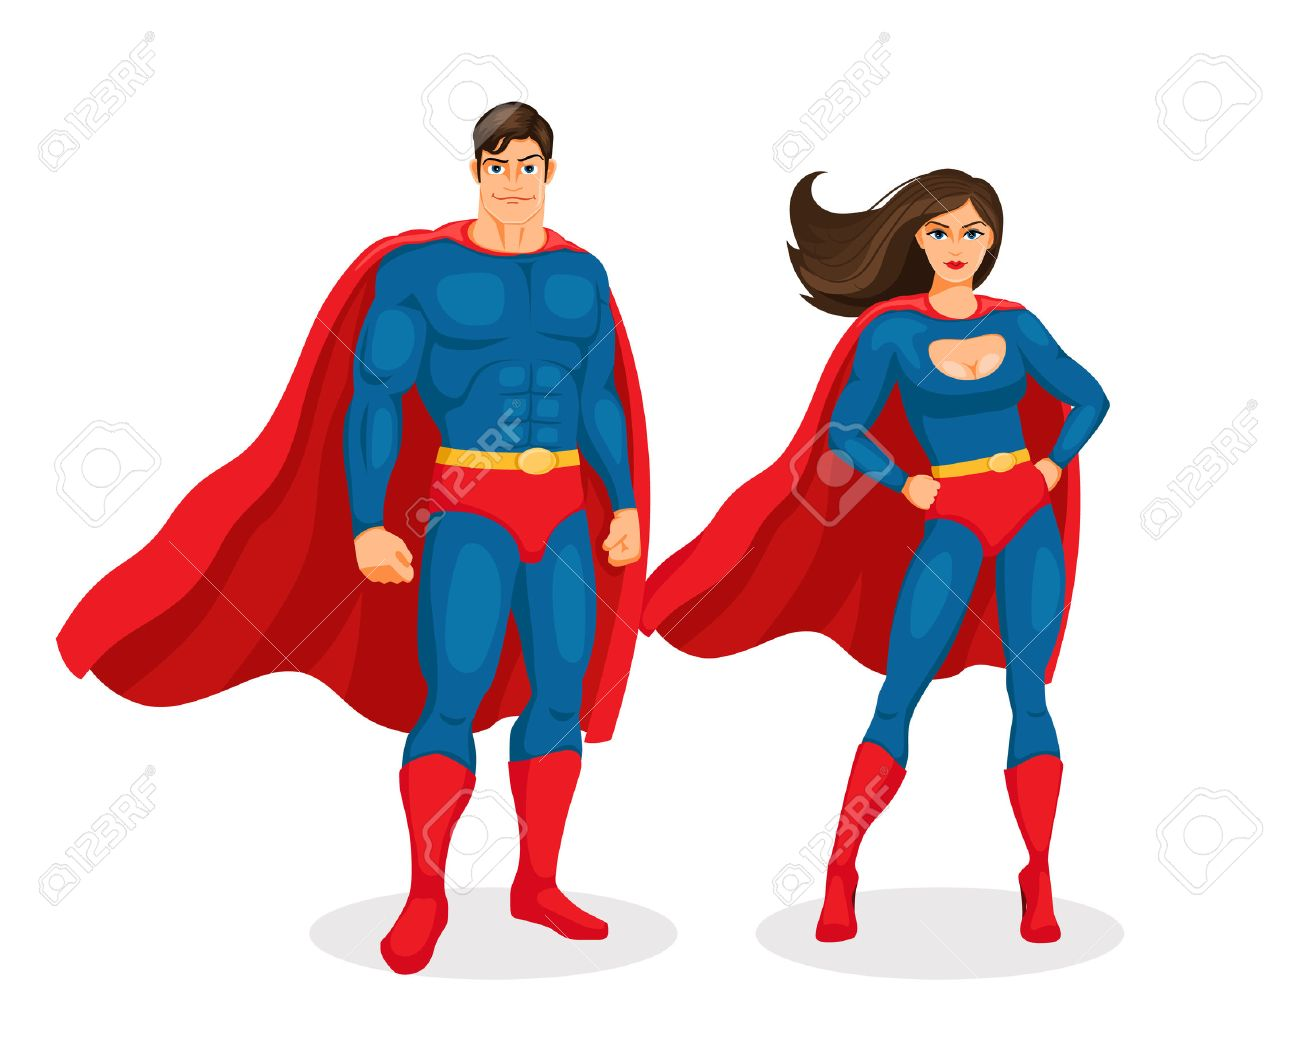 vector superhero couple royalty free cliparts vectors and stock rh 123rf com super hero vector superhero vector image licensing